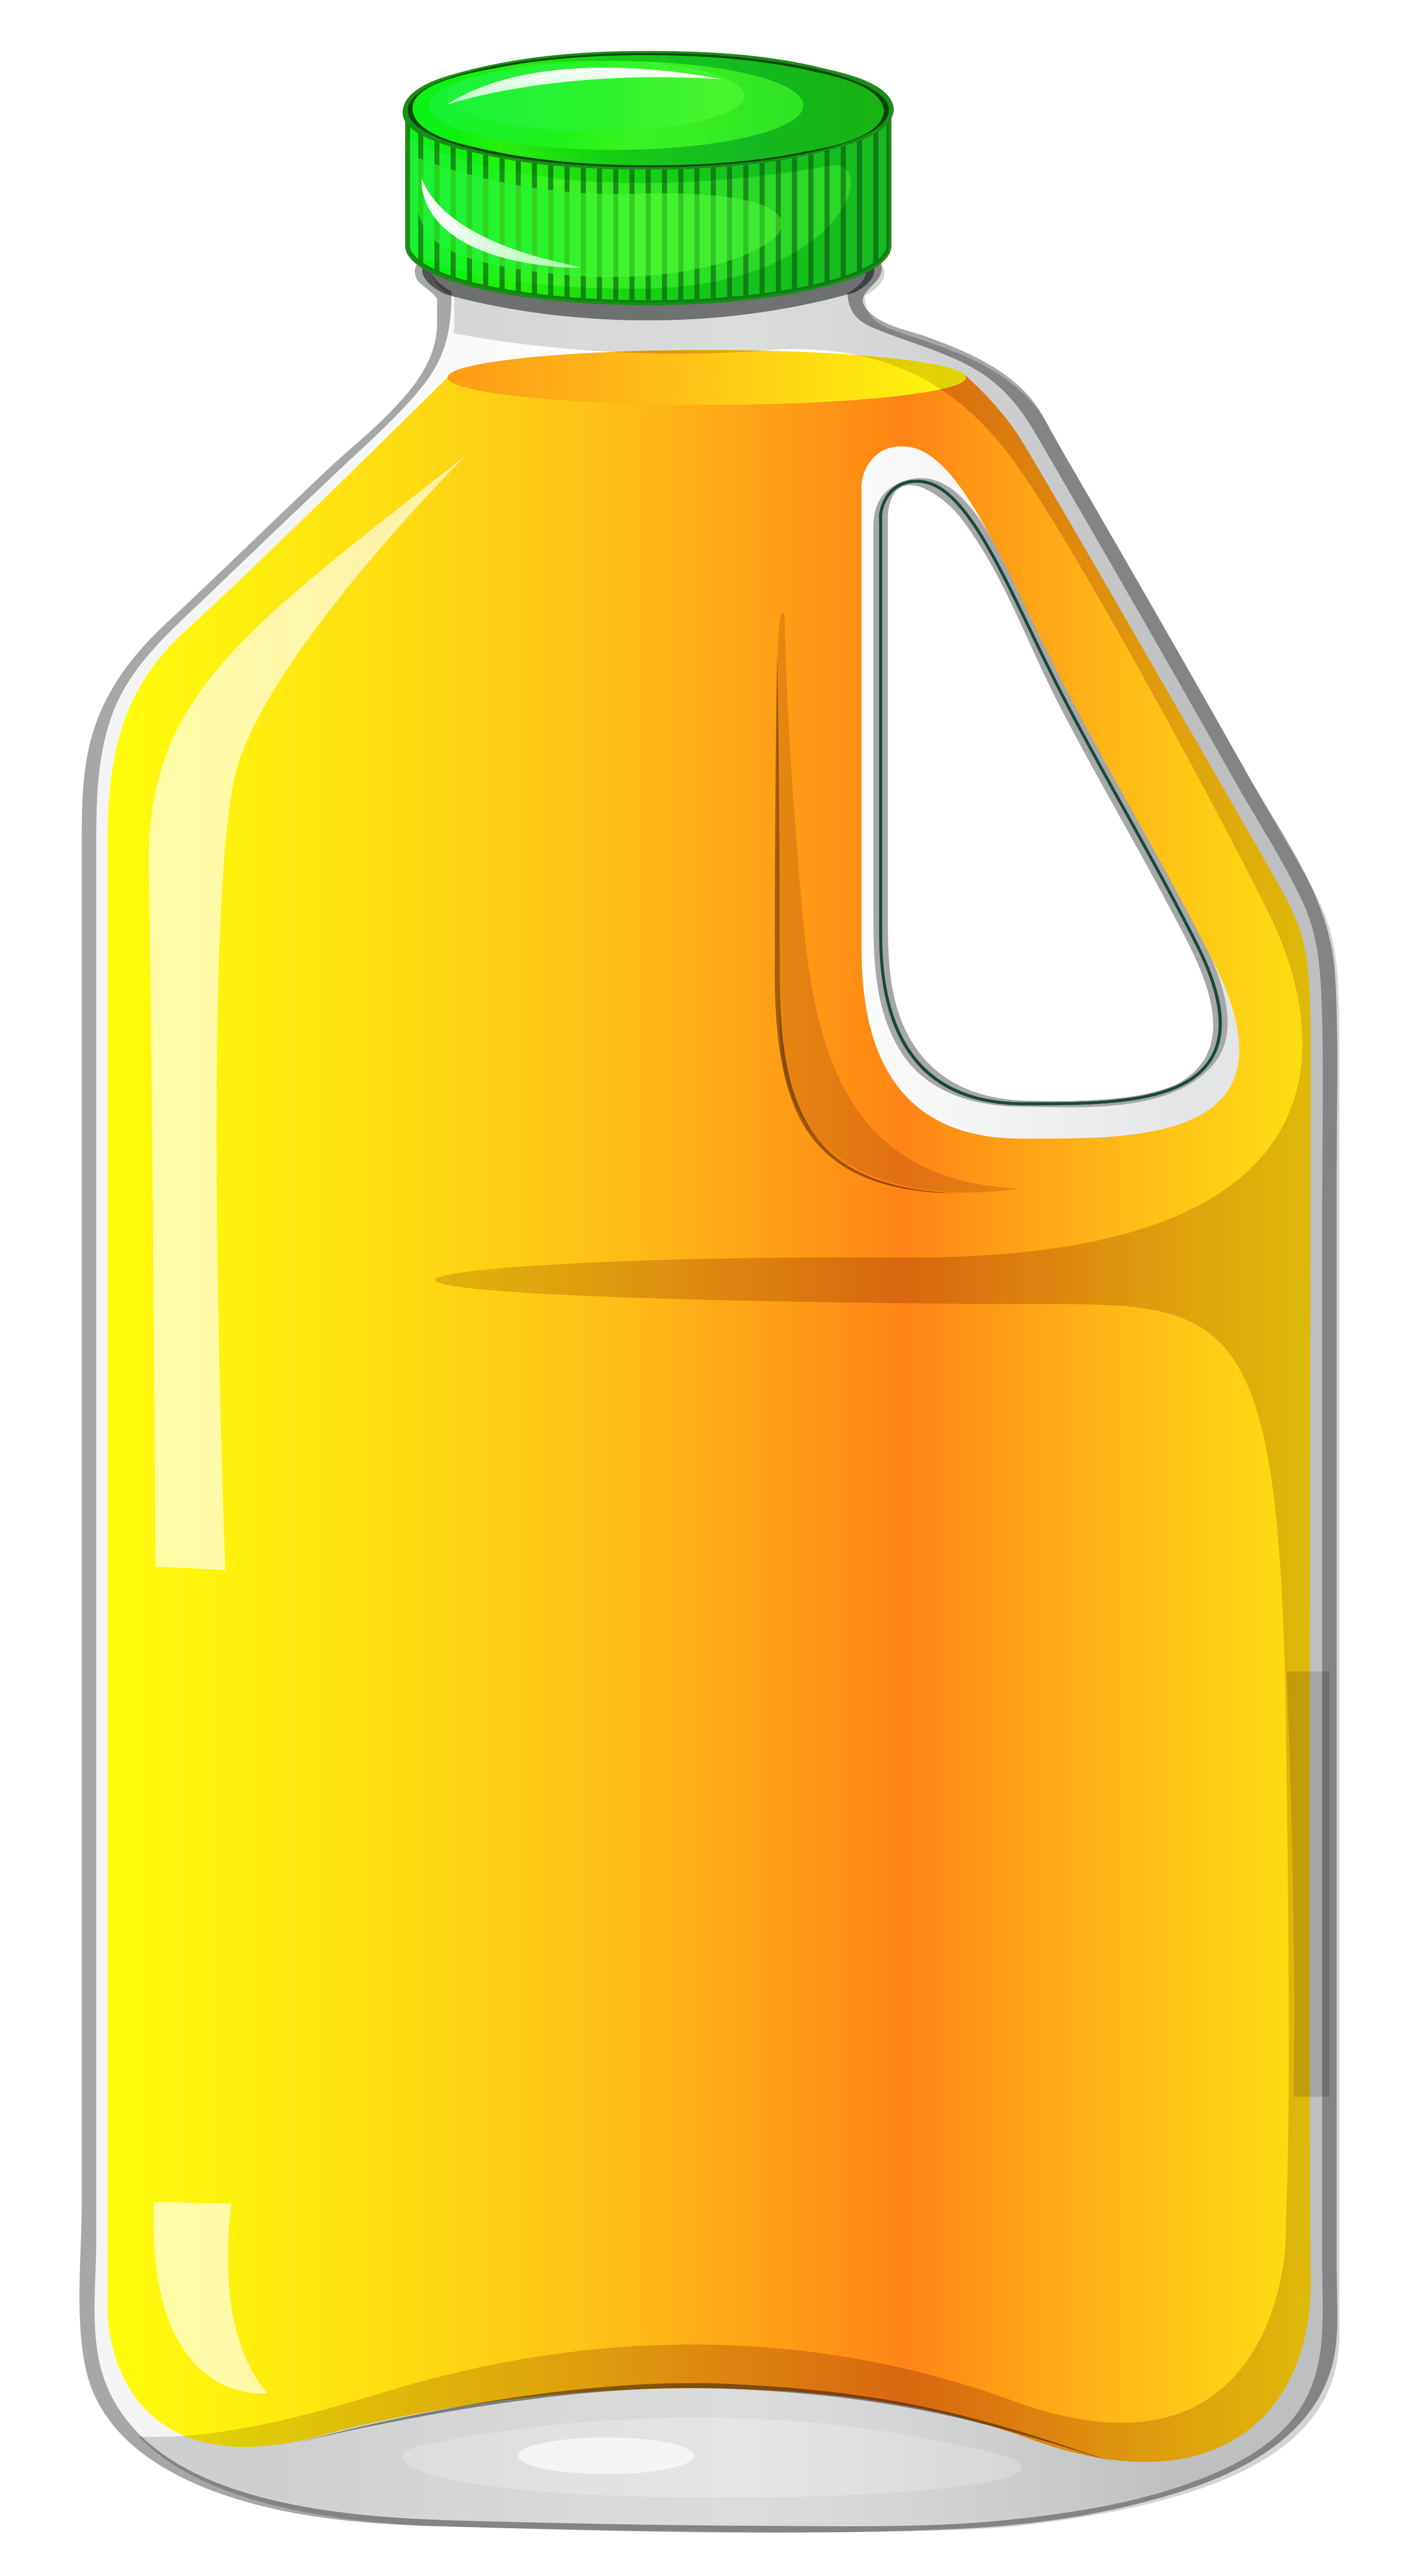 Juice clipart juice container. Large bottle with orange